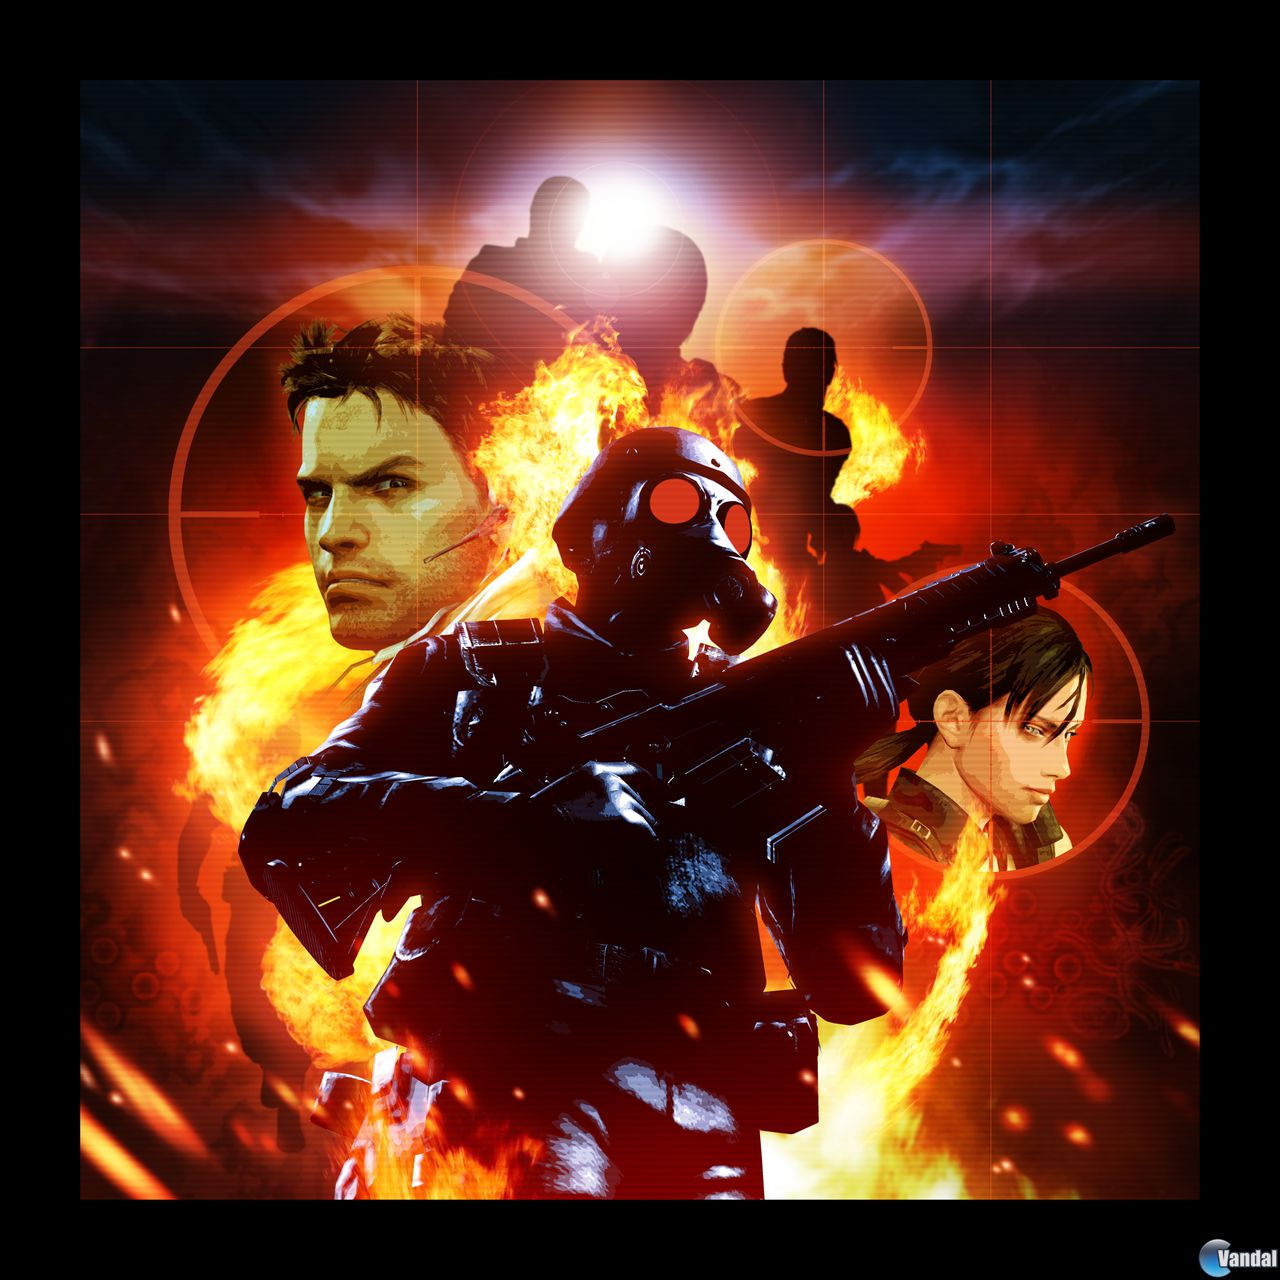 Resident Evil: The Mercenaries 3D Teaser Poster with 5 Character Silhouettes Revealed & Analysis